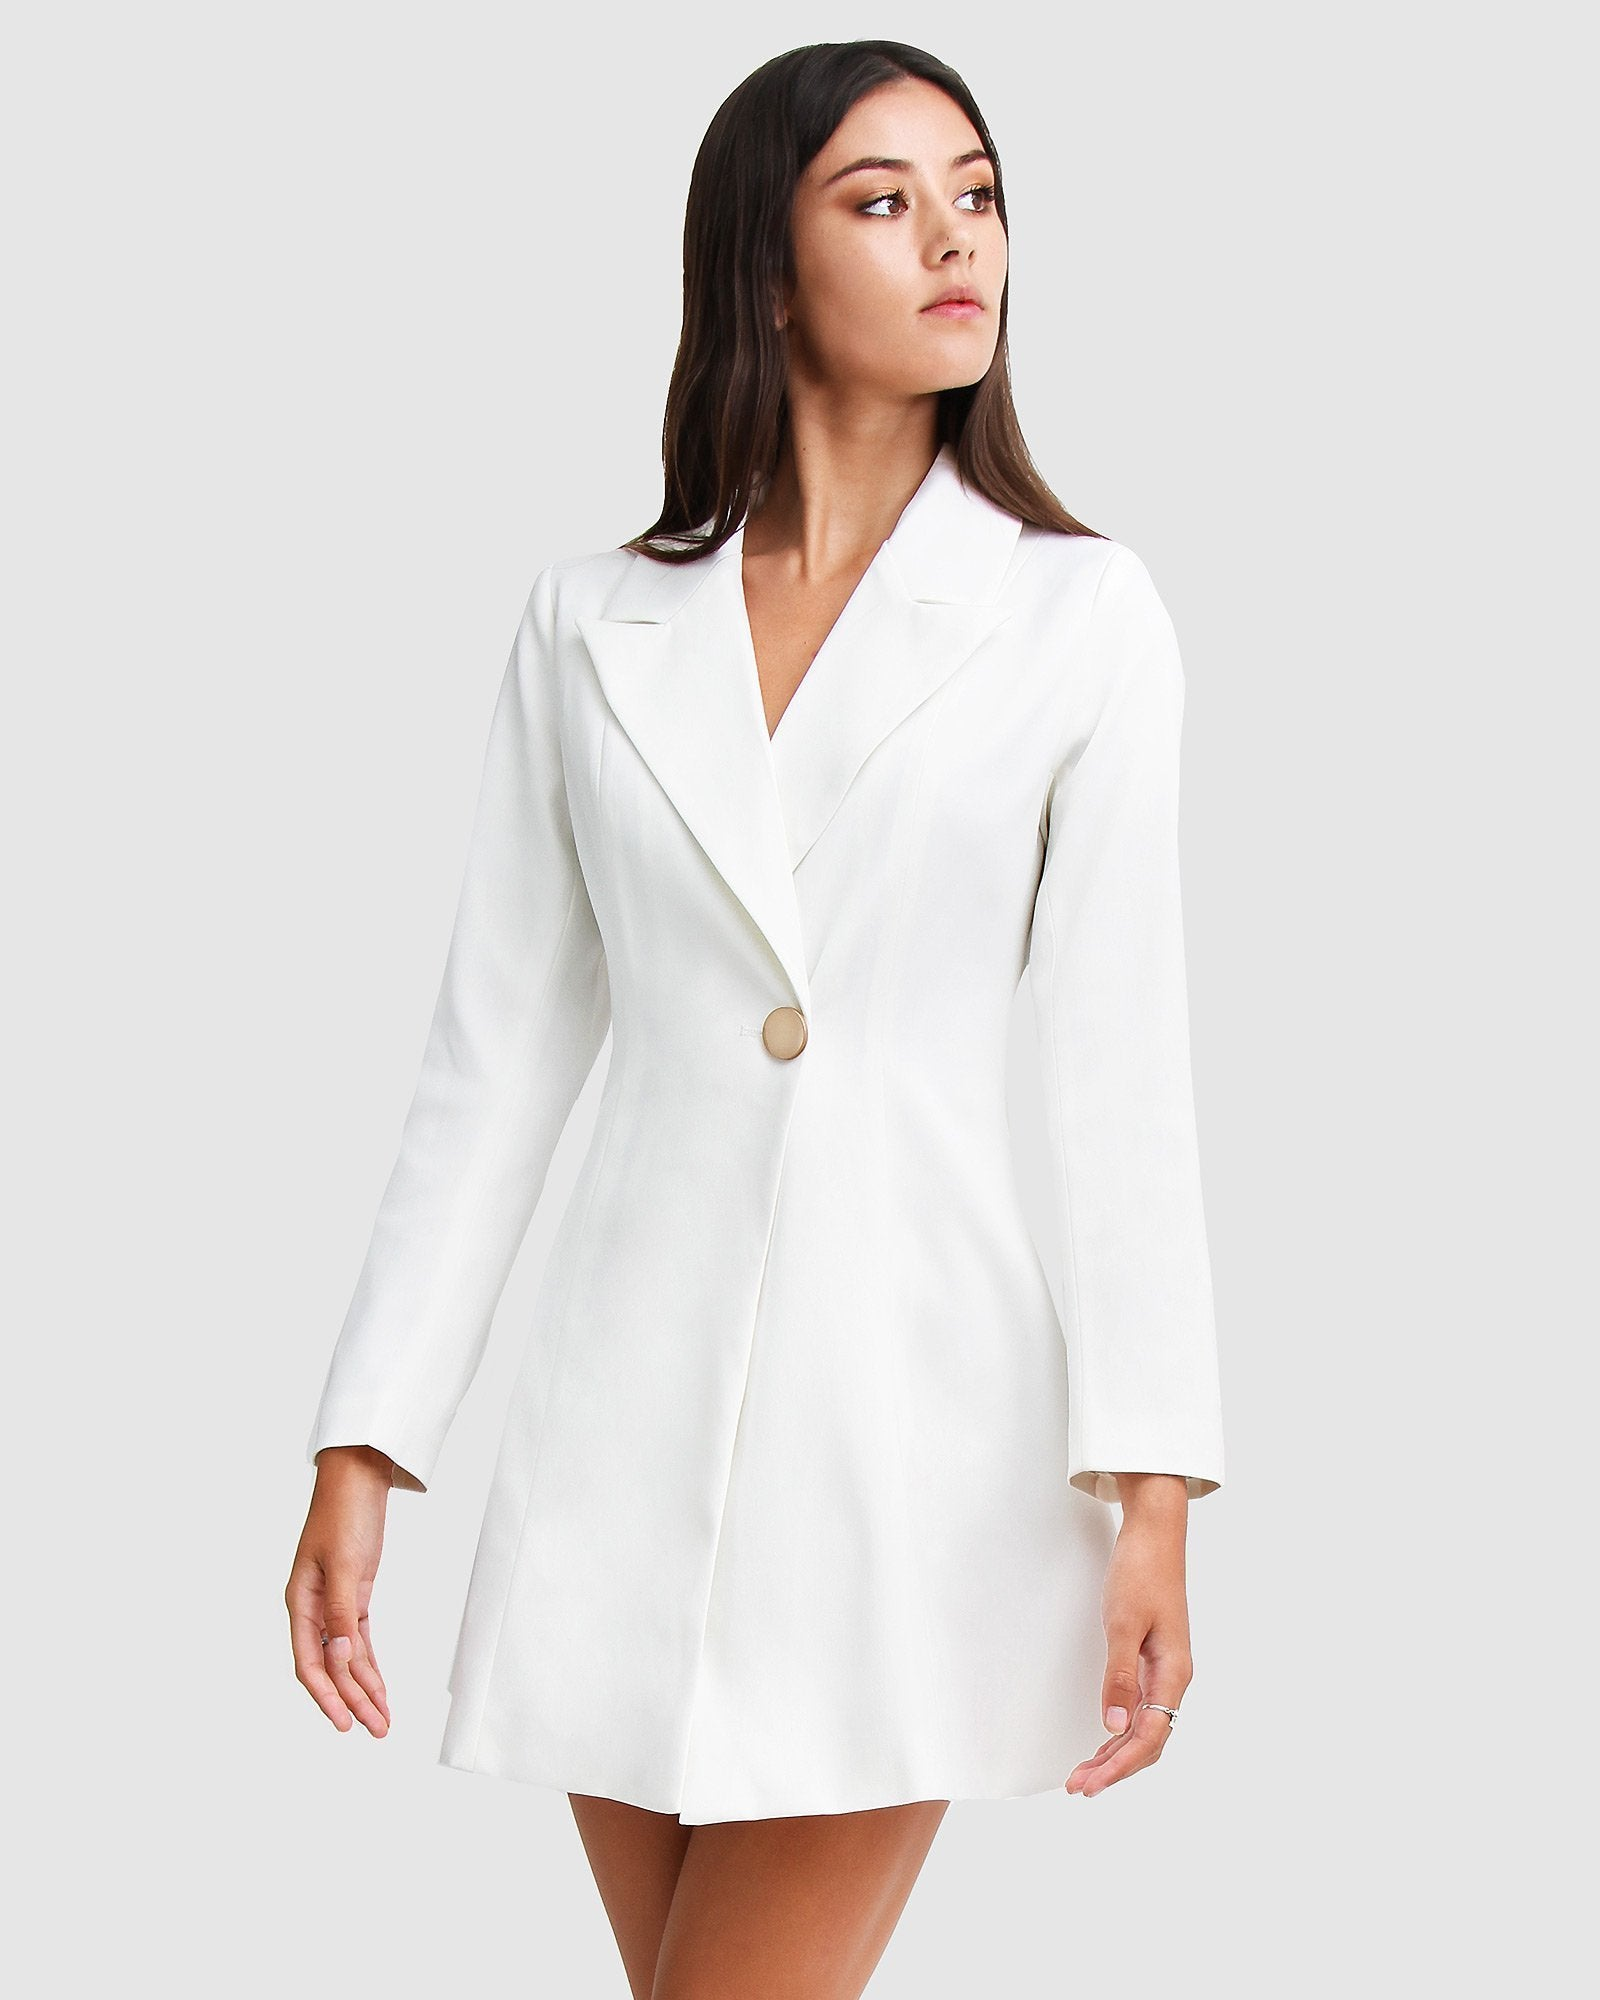 The Avenue Blazer Dress - White